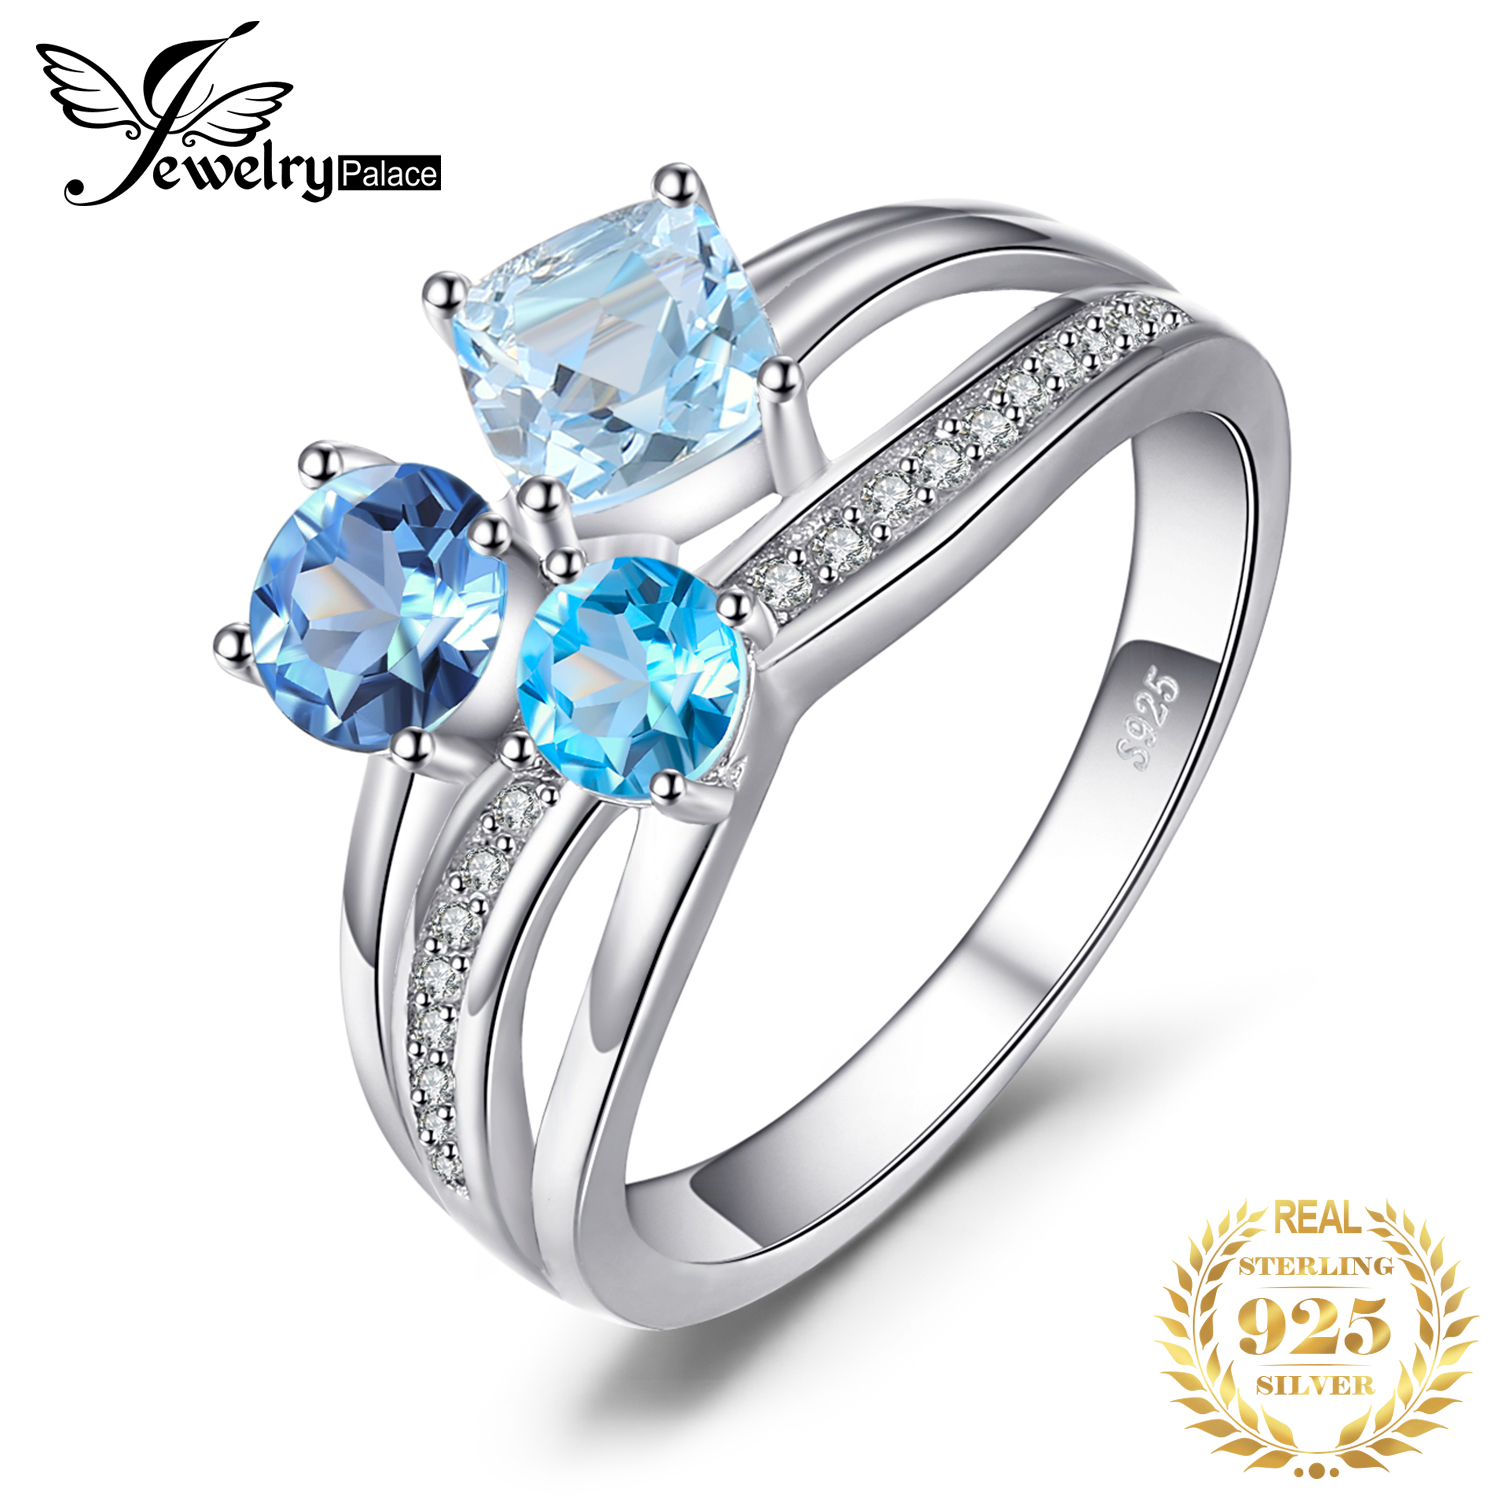 JewelryPalace 2ct 3 Stones Genuine Multi London Blue Topaz Ring 925 Sterling Silver Rings For Women Silver 925 Gemstones Jewelry